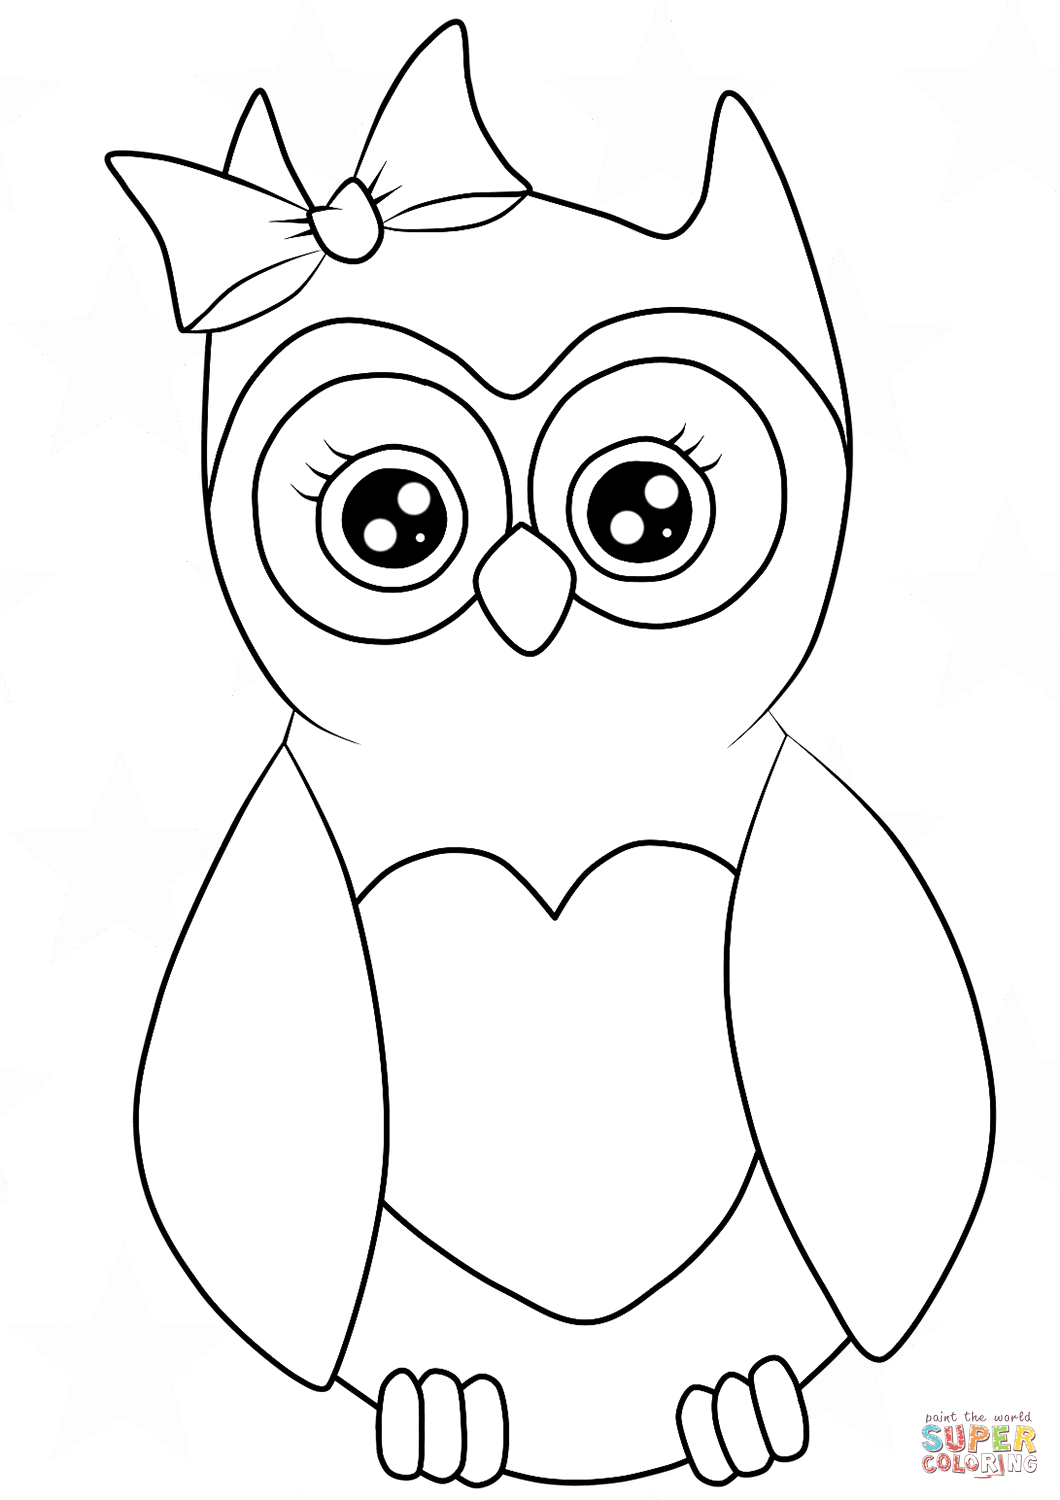 Cutest Cartoon Owl Coloring Page Free Printable Leopard